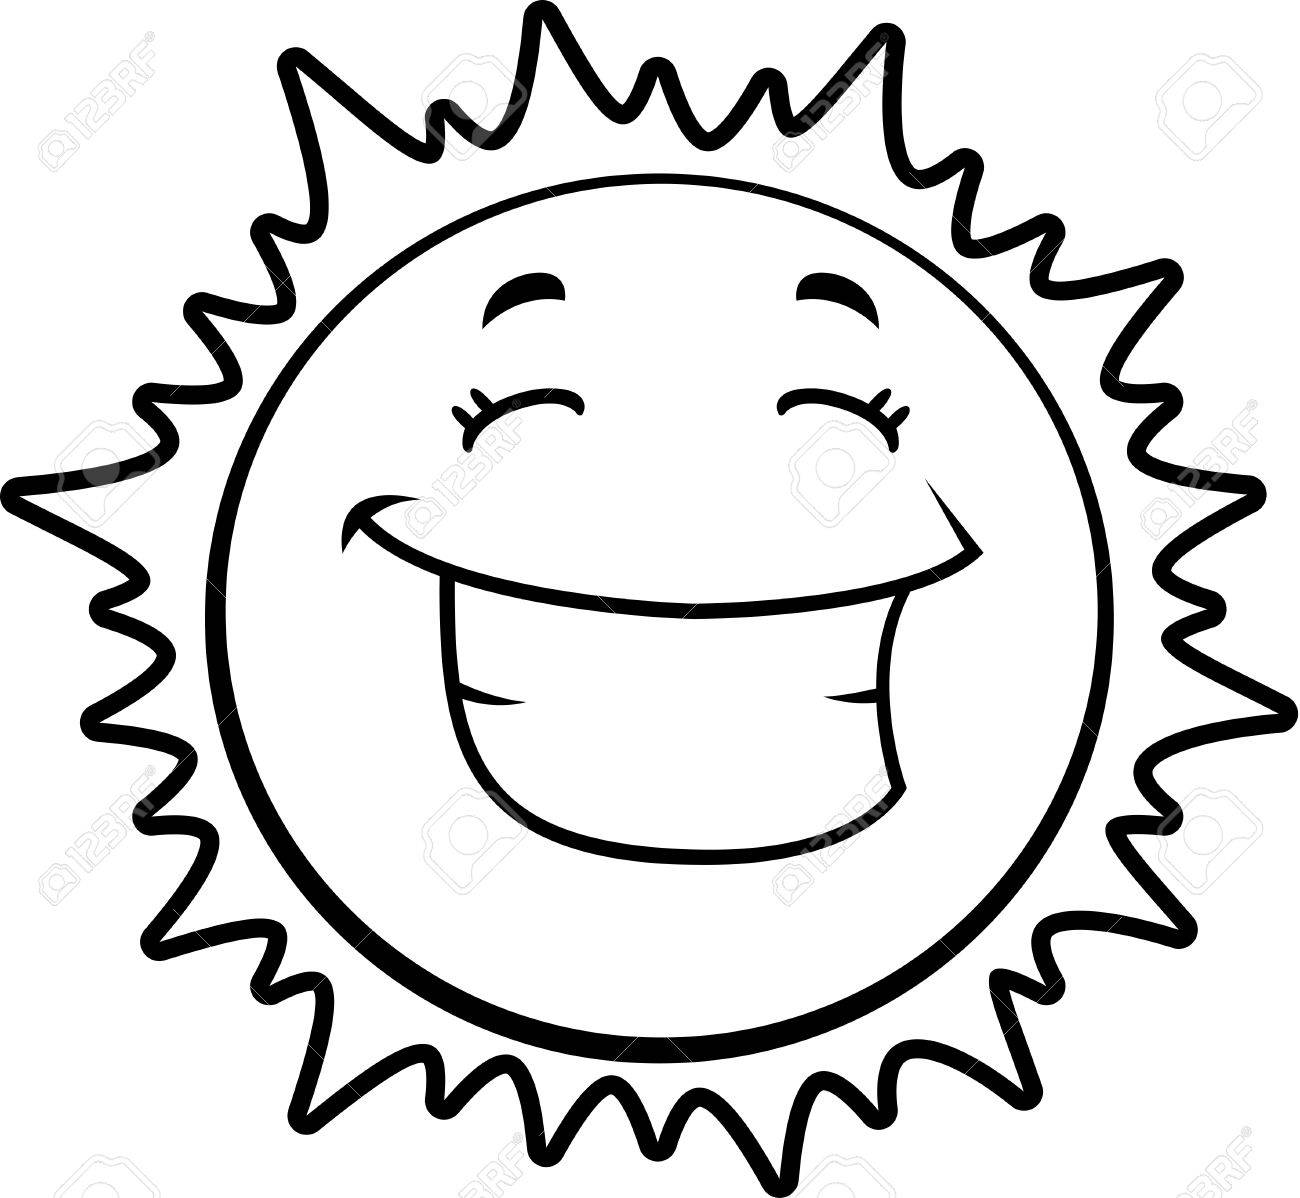 Smiling Sun Drawing At Getdrawings